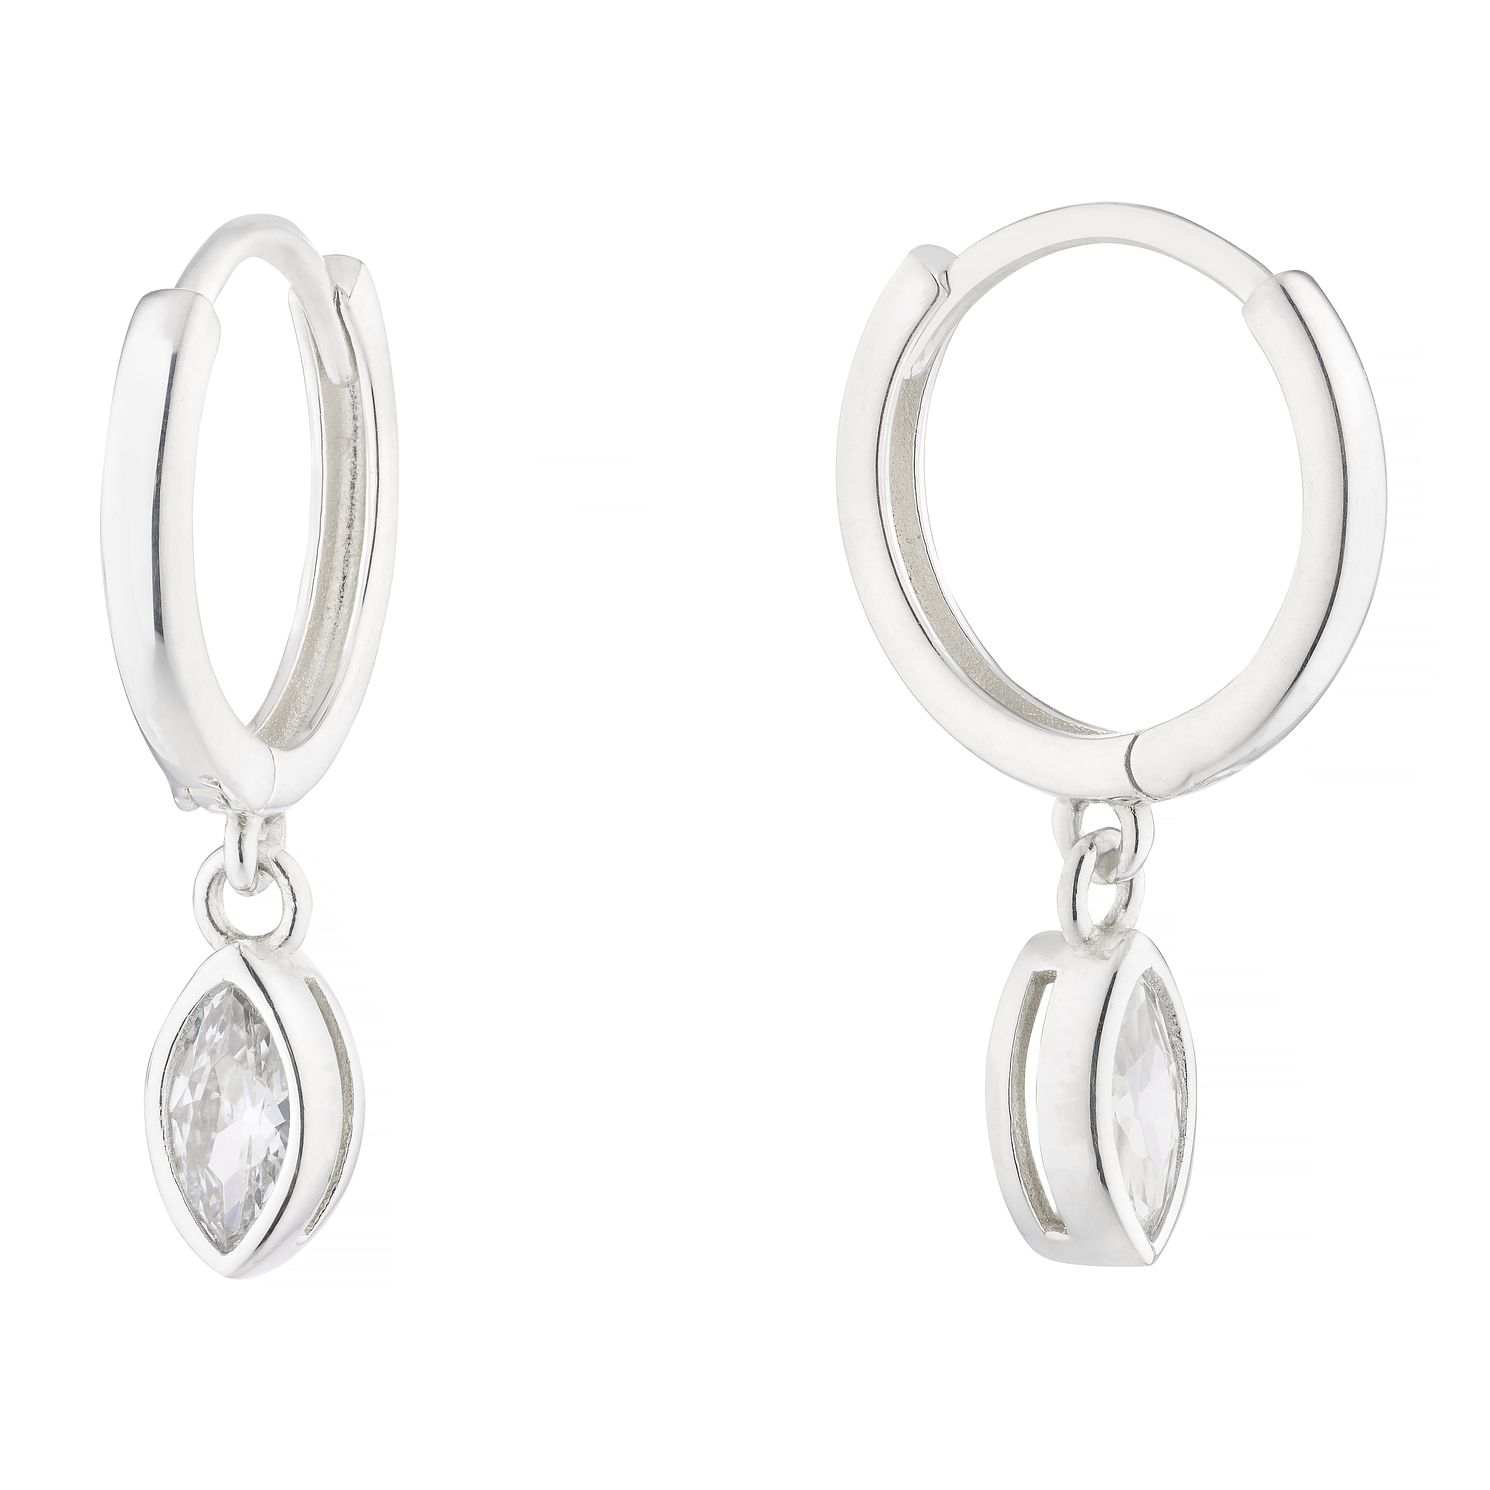 Silver Marquise Cubic Zirconia Charm Huggie Hoop Earrings - Product number 1159178